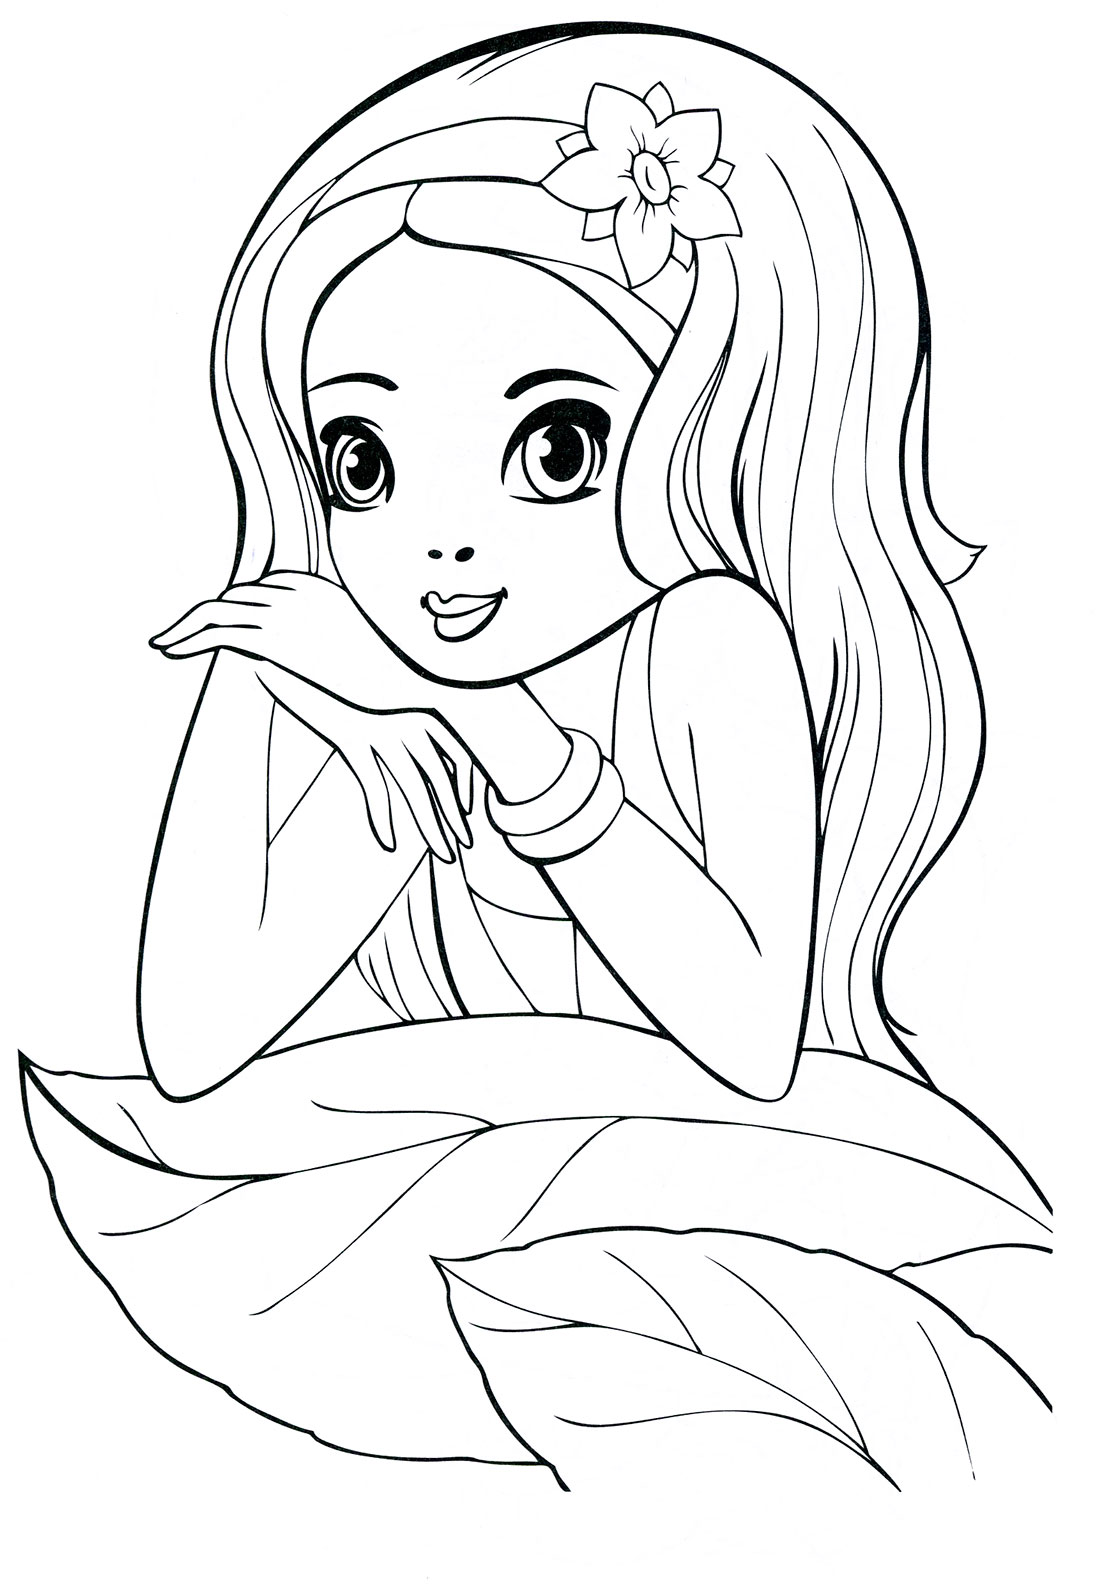 Coloring pages for 8 9 10year